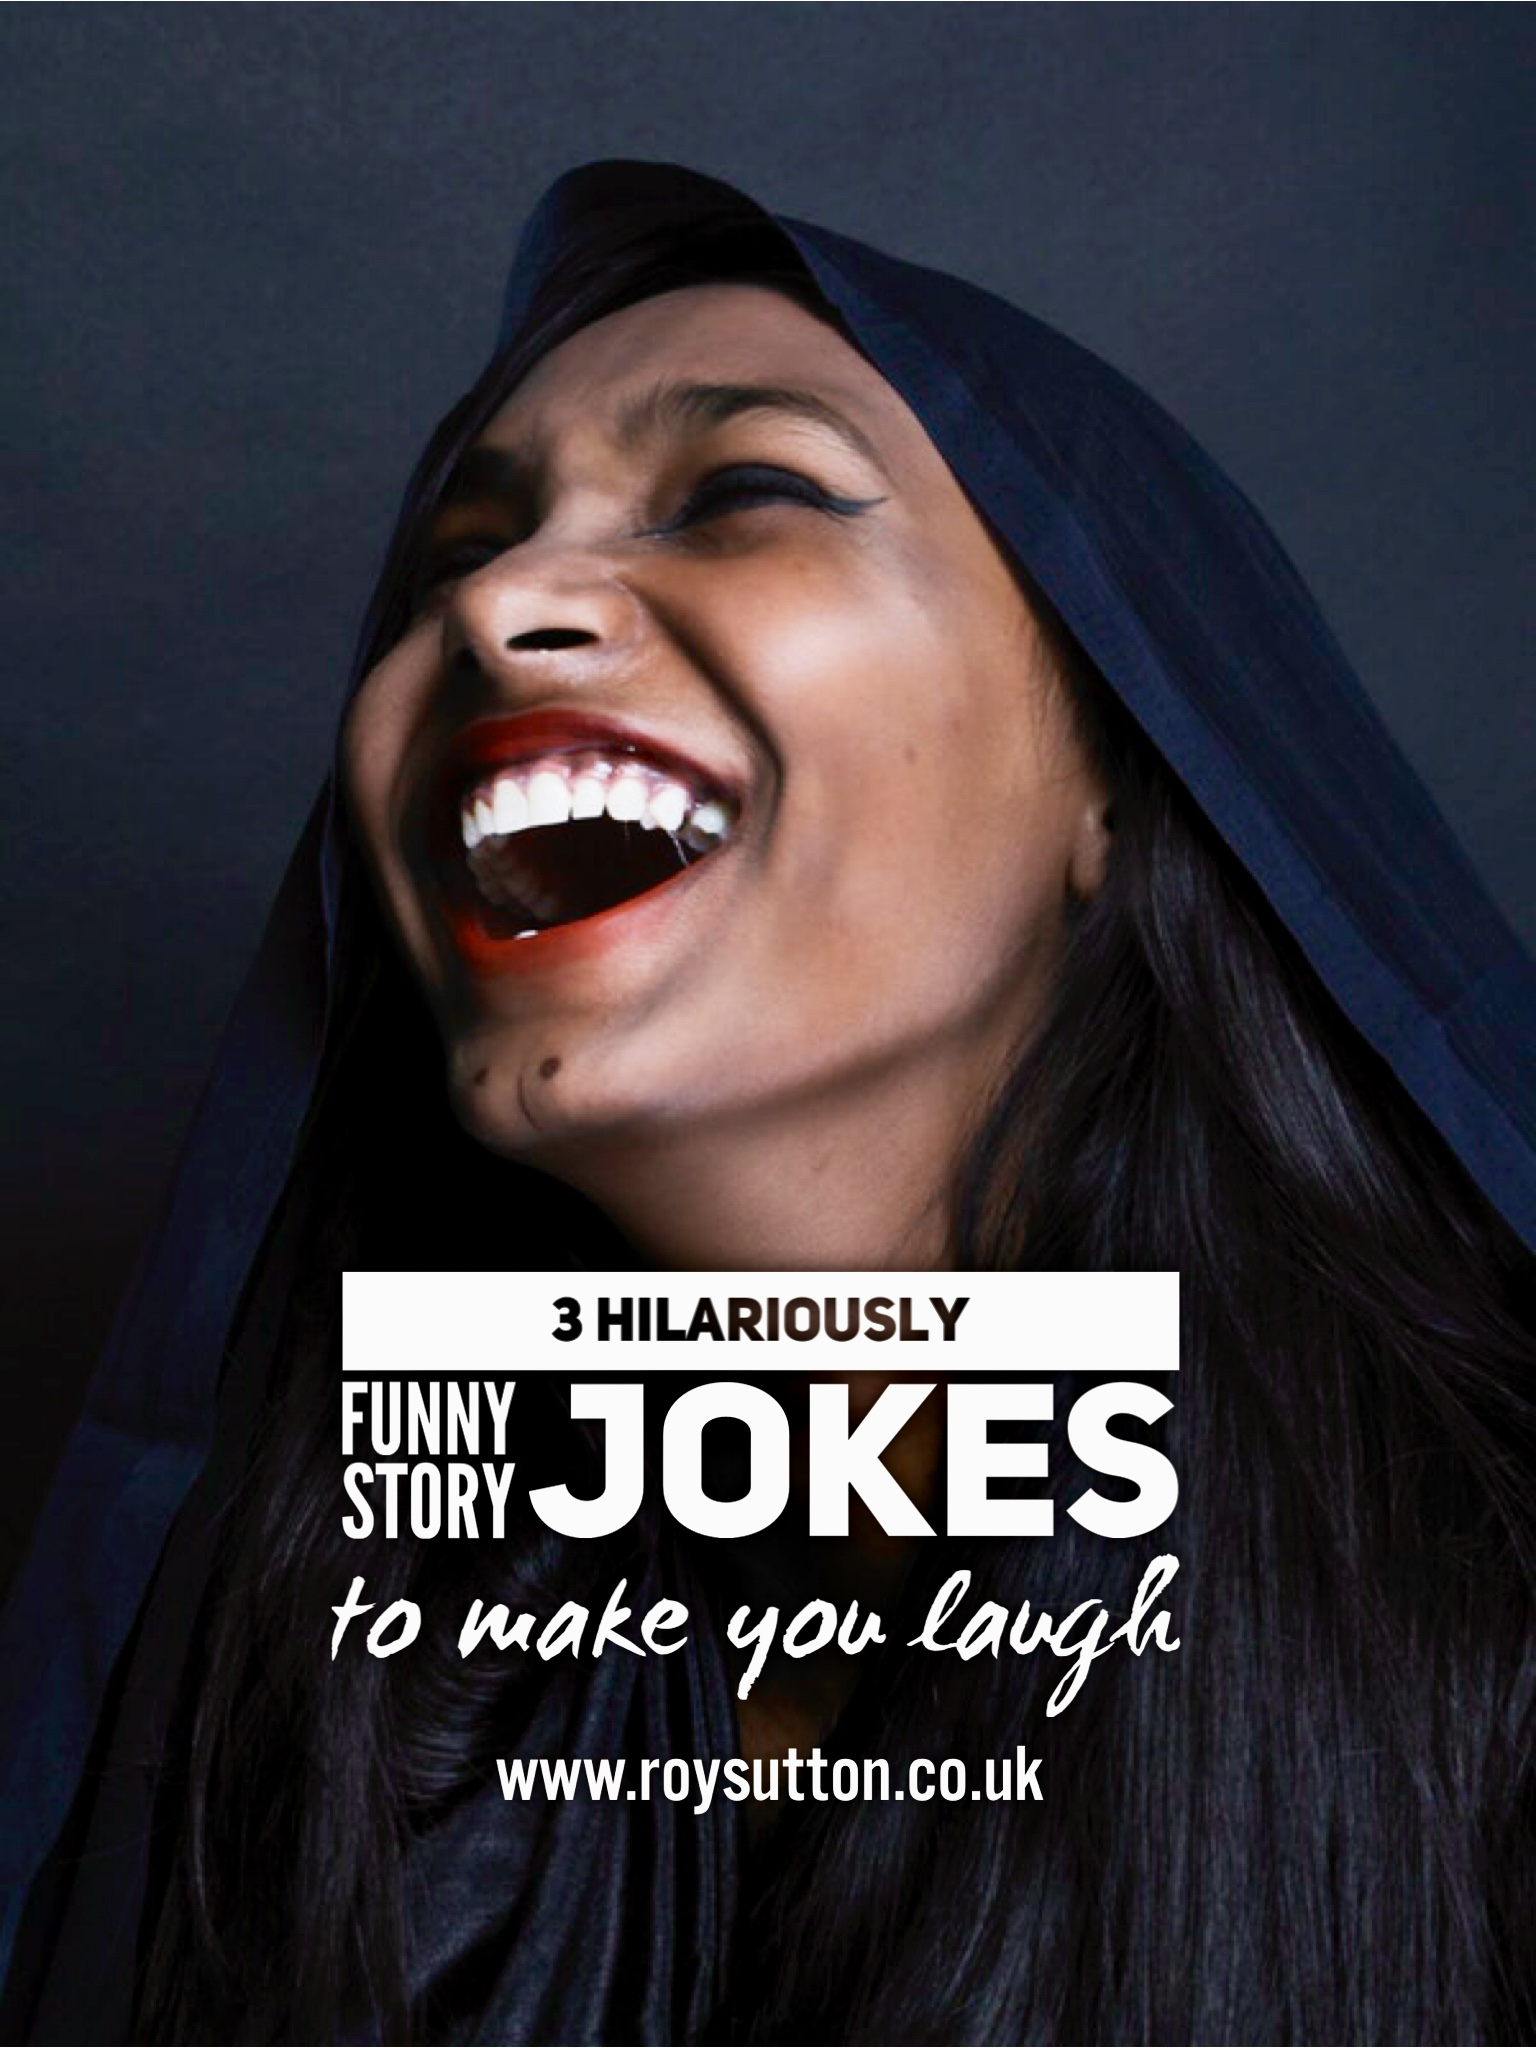 f398d6ab 3 hilariously funny story jokes to make you laugh - Roy Sutton